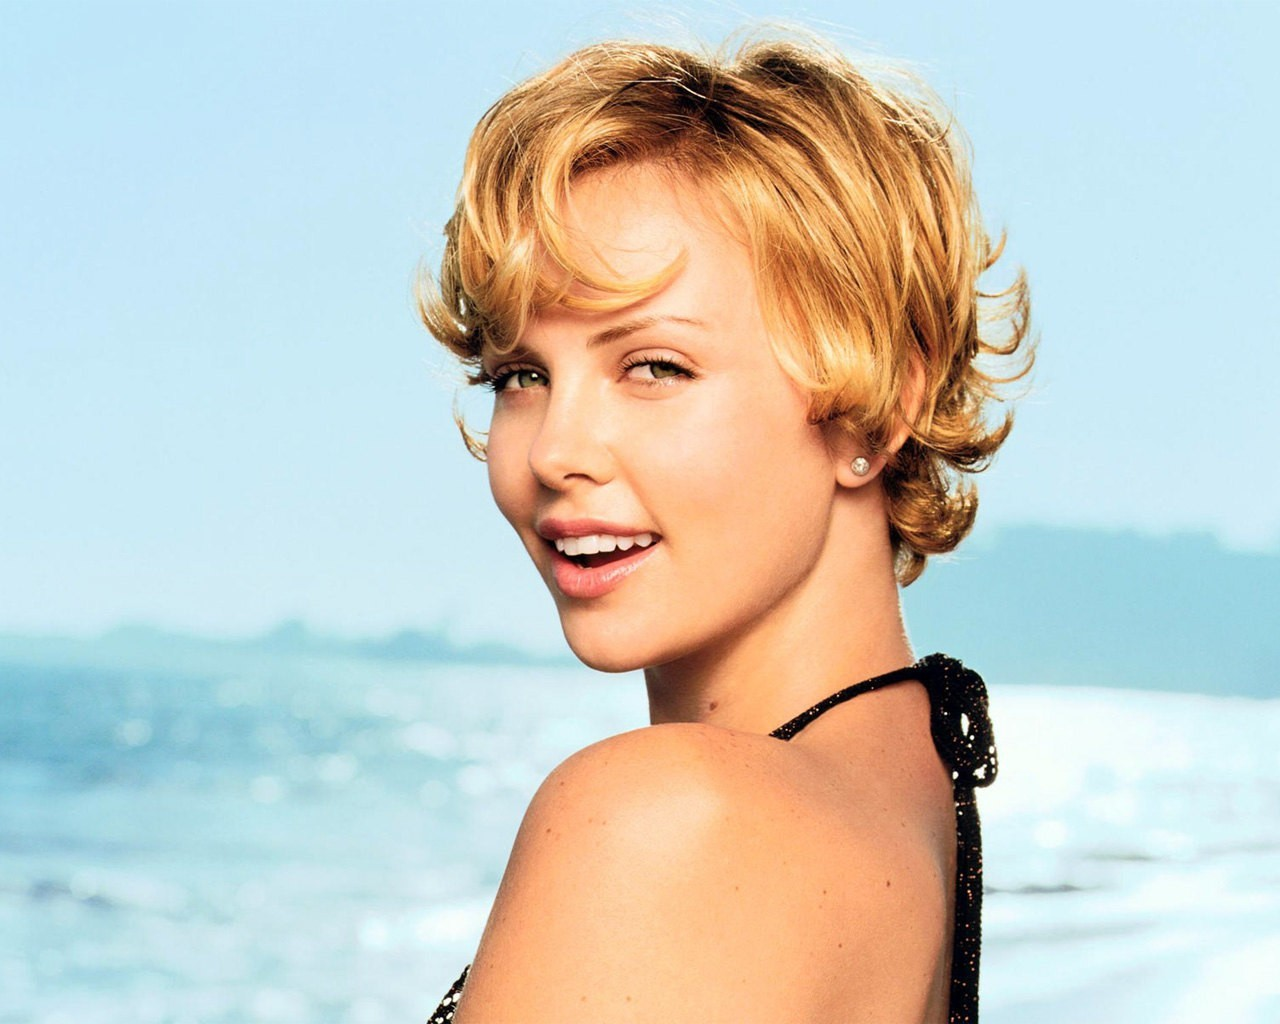 woman Actress charlize theron HD Wallpaper